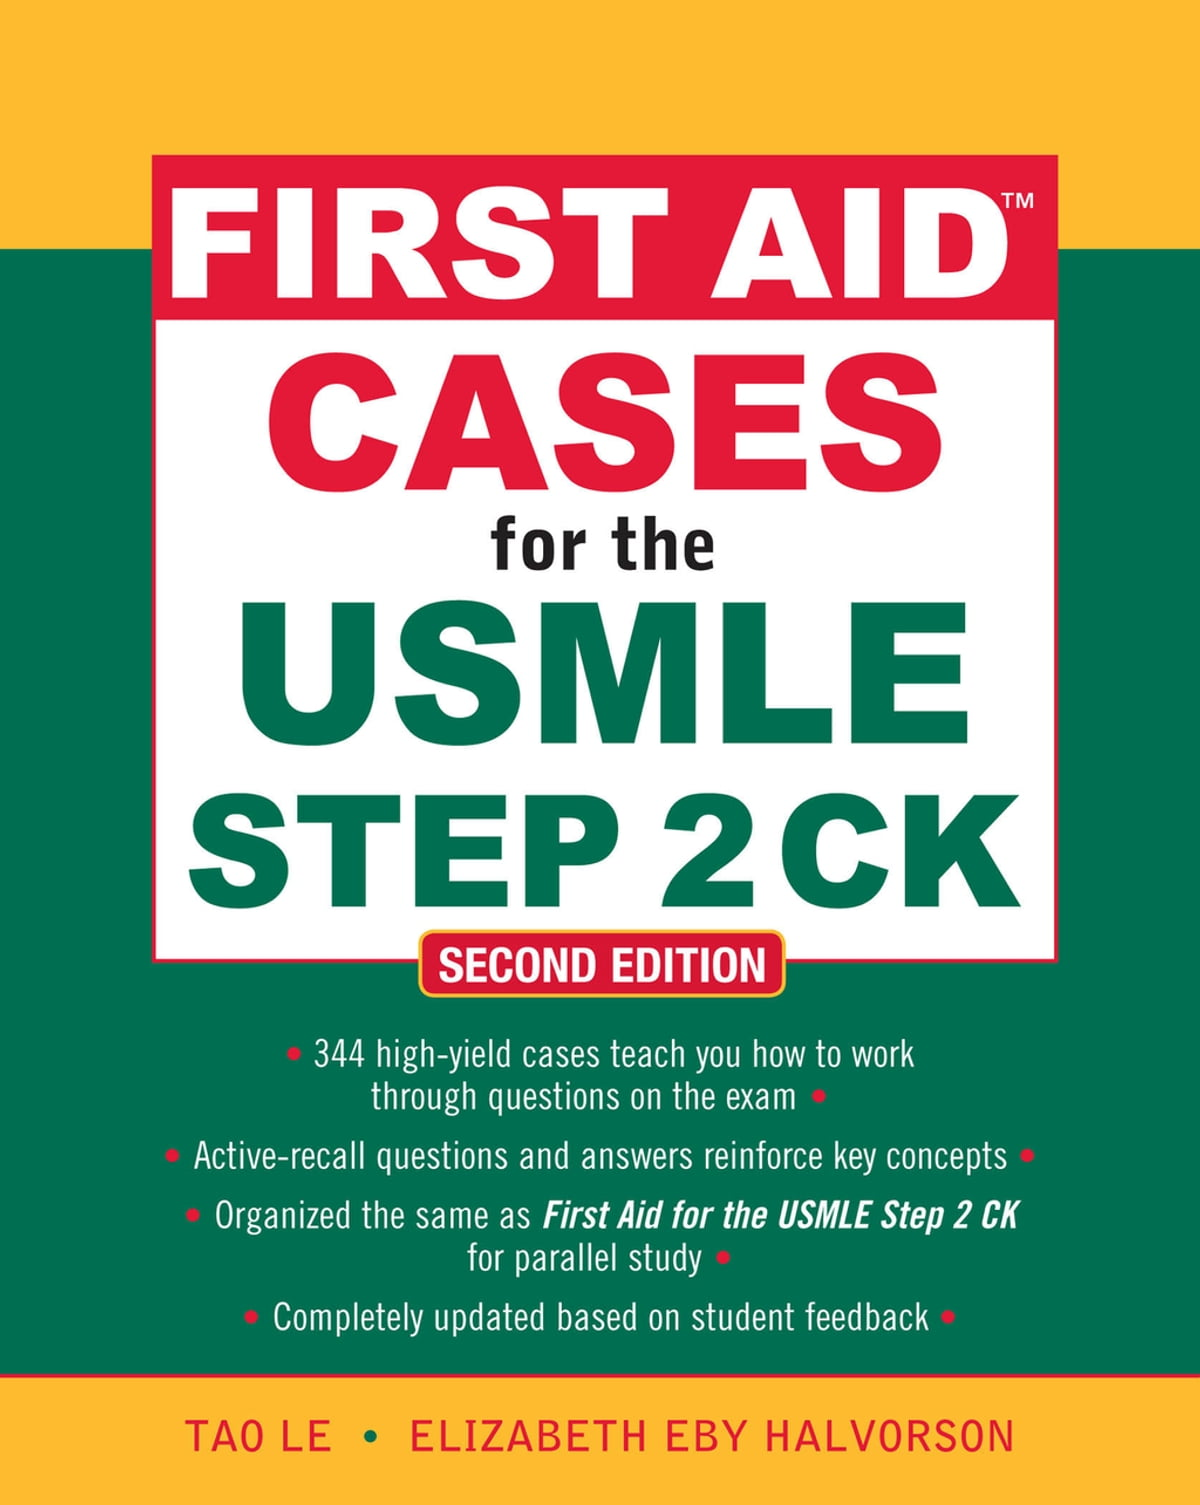 First Aid Cases for the USMLE Step 2 CK, Second Edition ebook by Elizabeth  Eby Halvorson - Rakuten Kobo